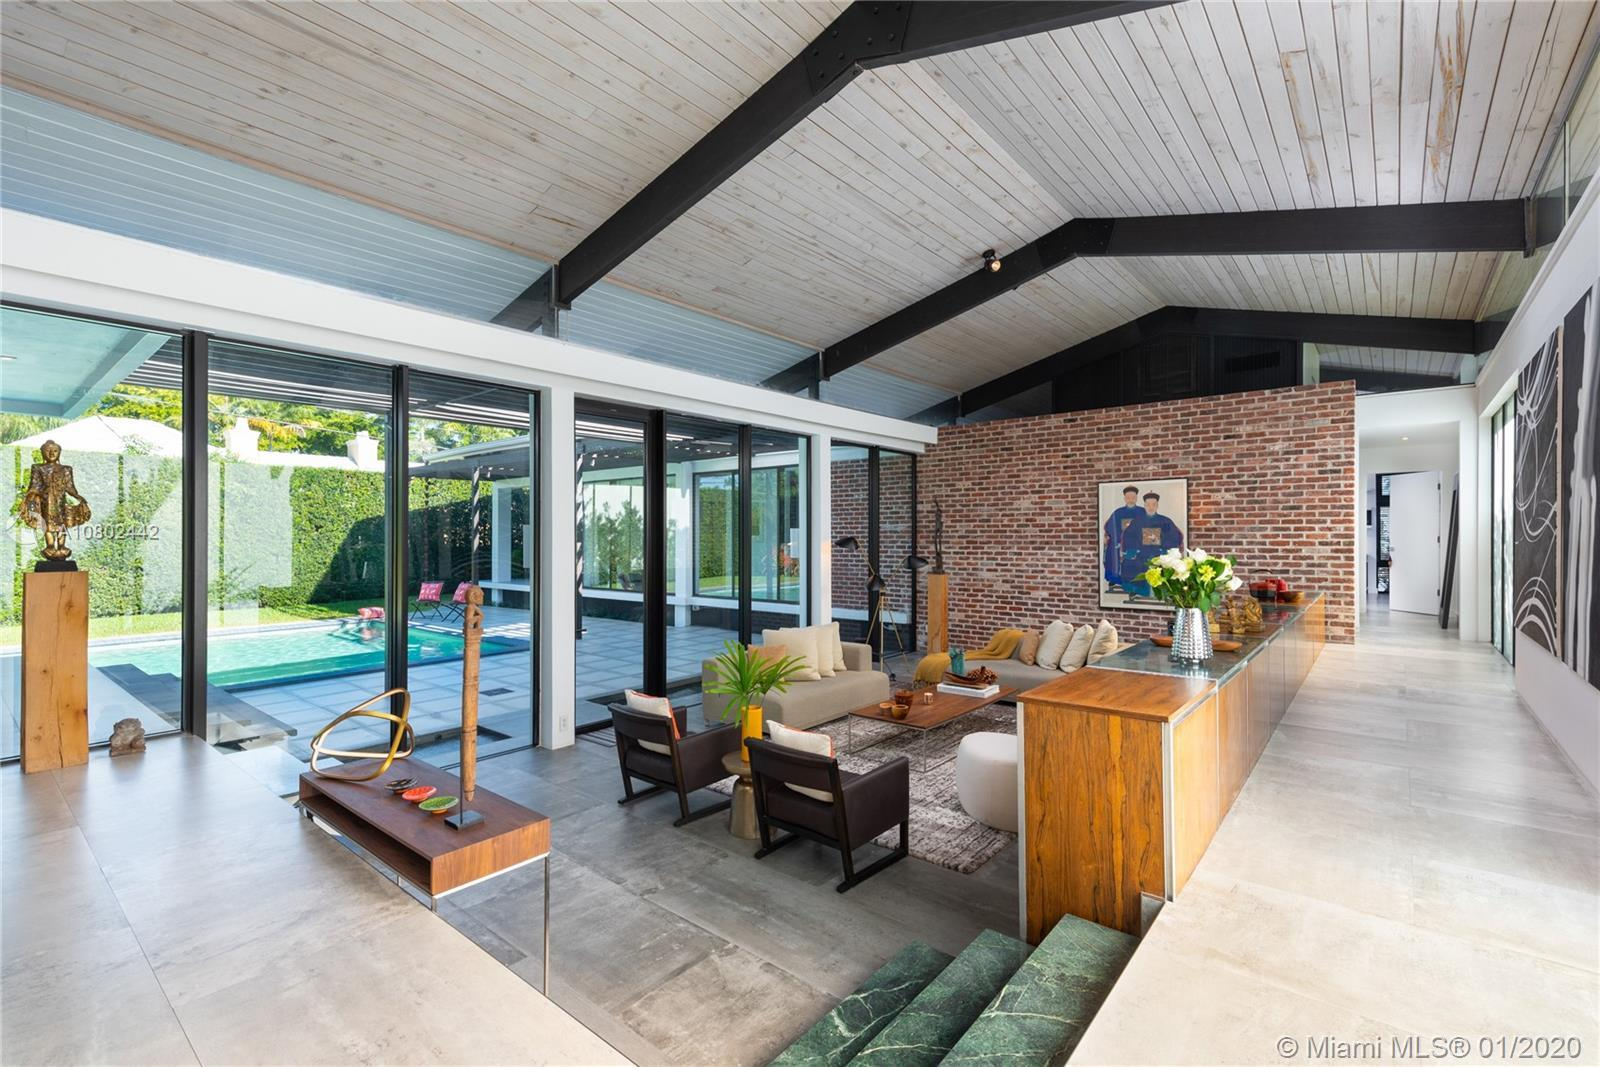 Timeless midcentury modern, 1 of a kind, Henry End designed architectural gem in Miami Shores exudes